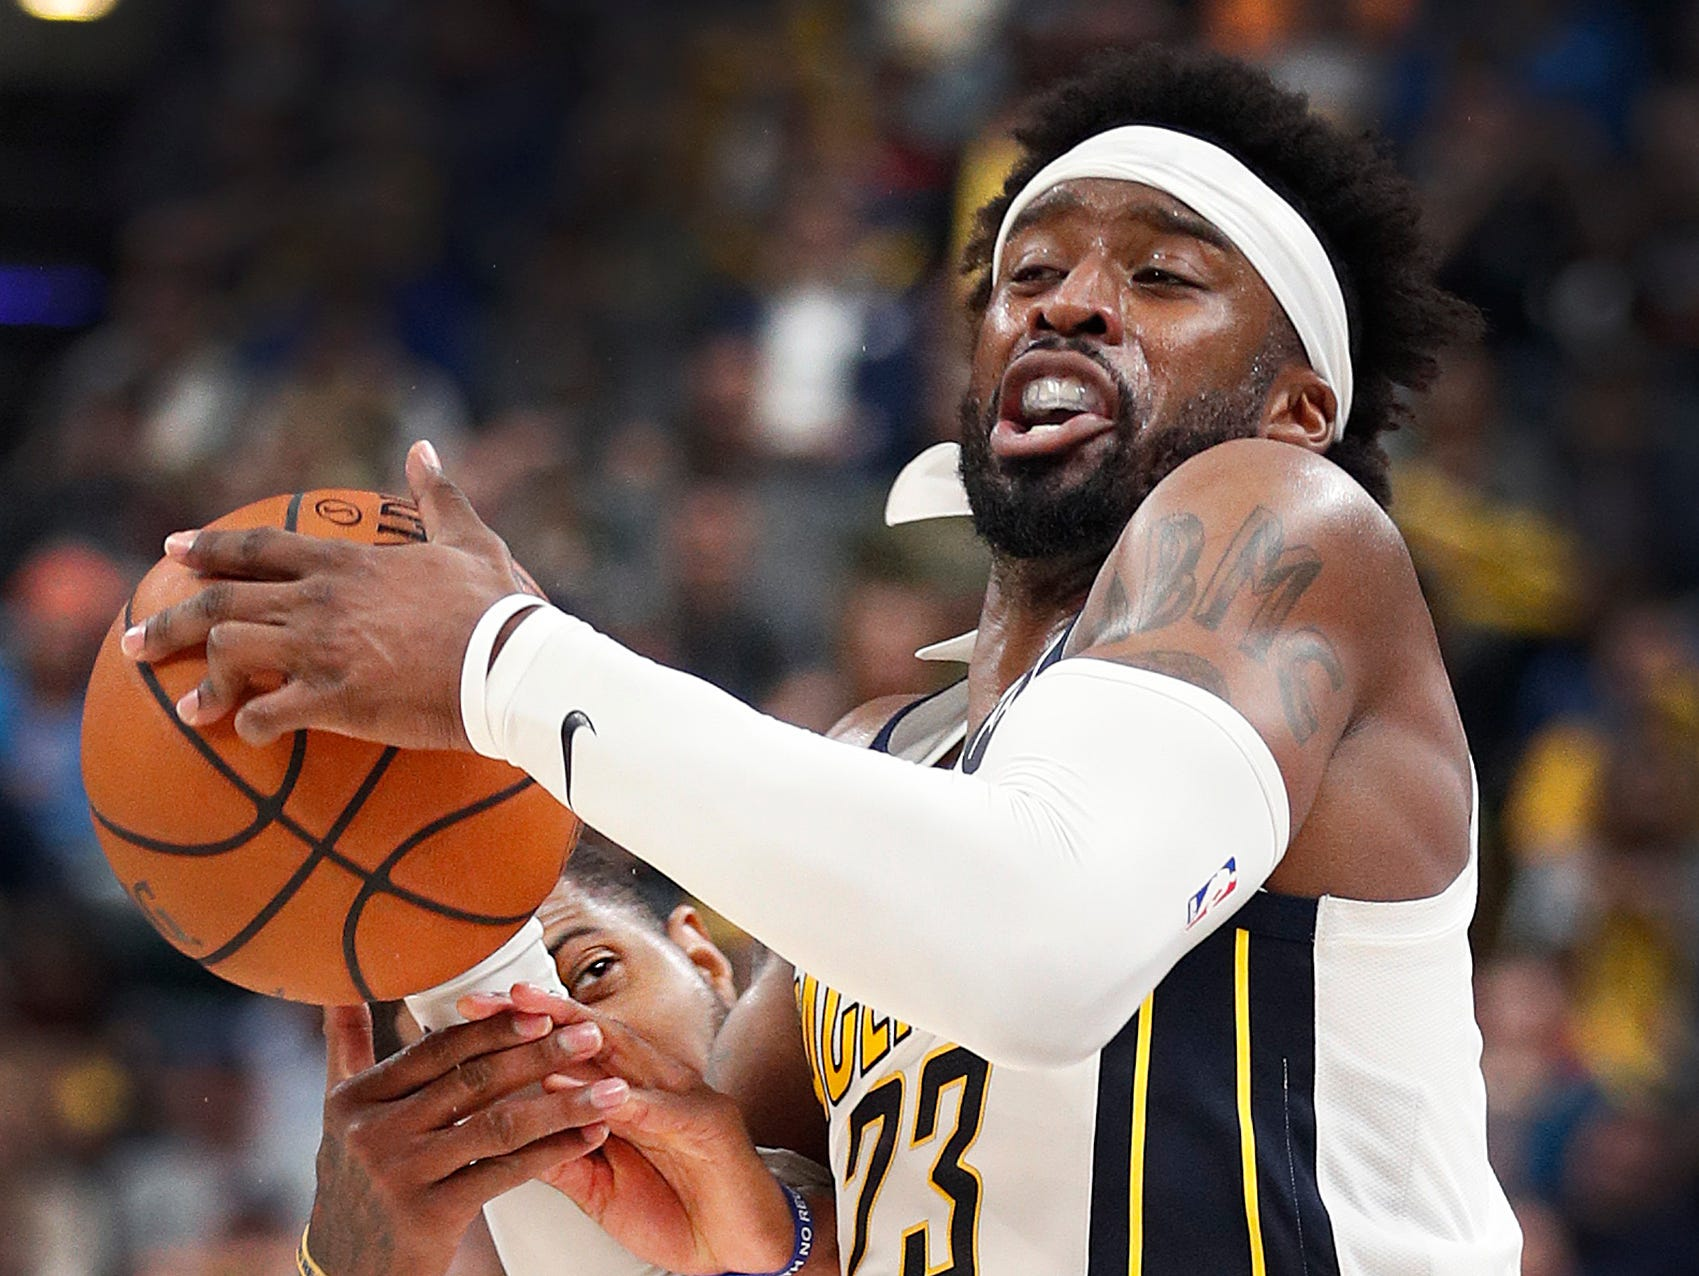 Indiana Pacers guard Wesley Matthews (23) is fouled by Oklahoma City Thunder forward Paul George (13) in the second half of their game at Bankers Life Fieldhouse on Thursday, Mar. 14, 2019. The Pacers defeated the Thunder 108-106.